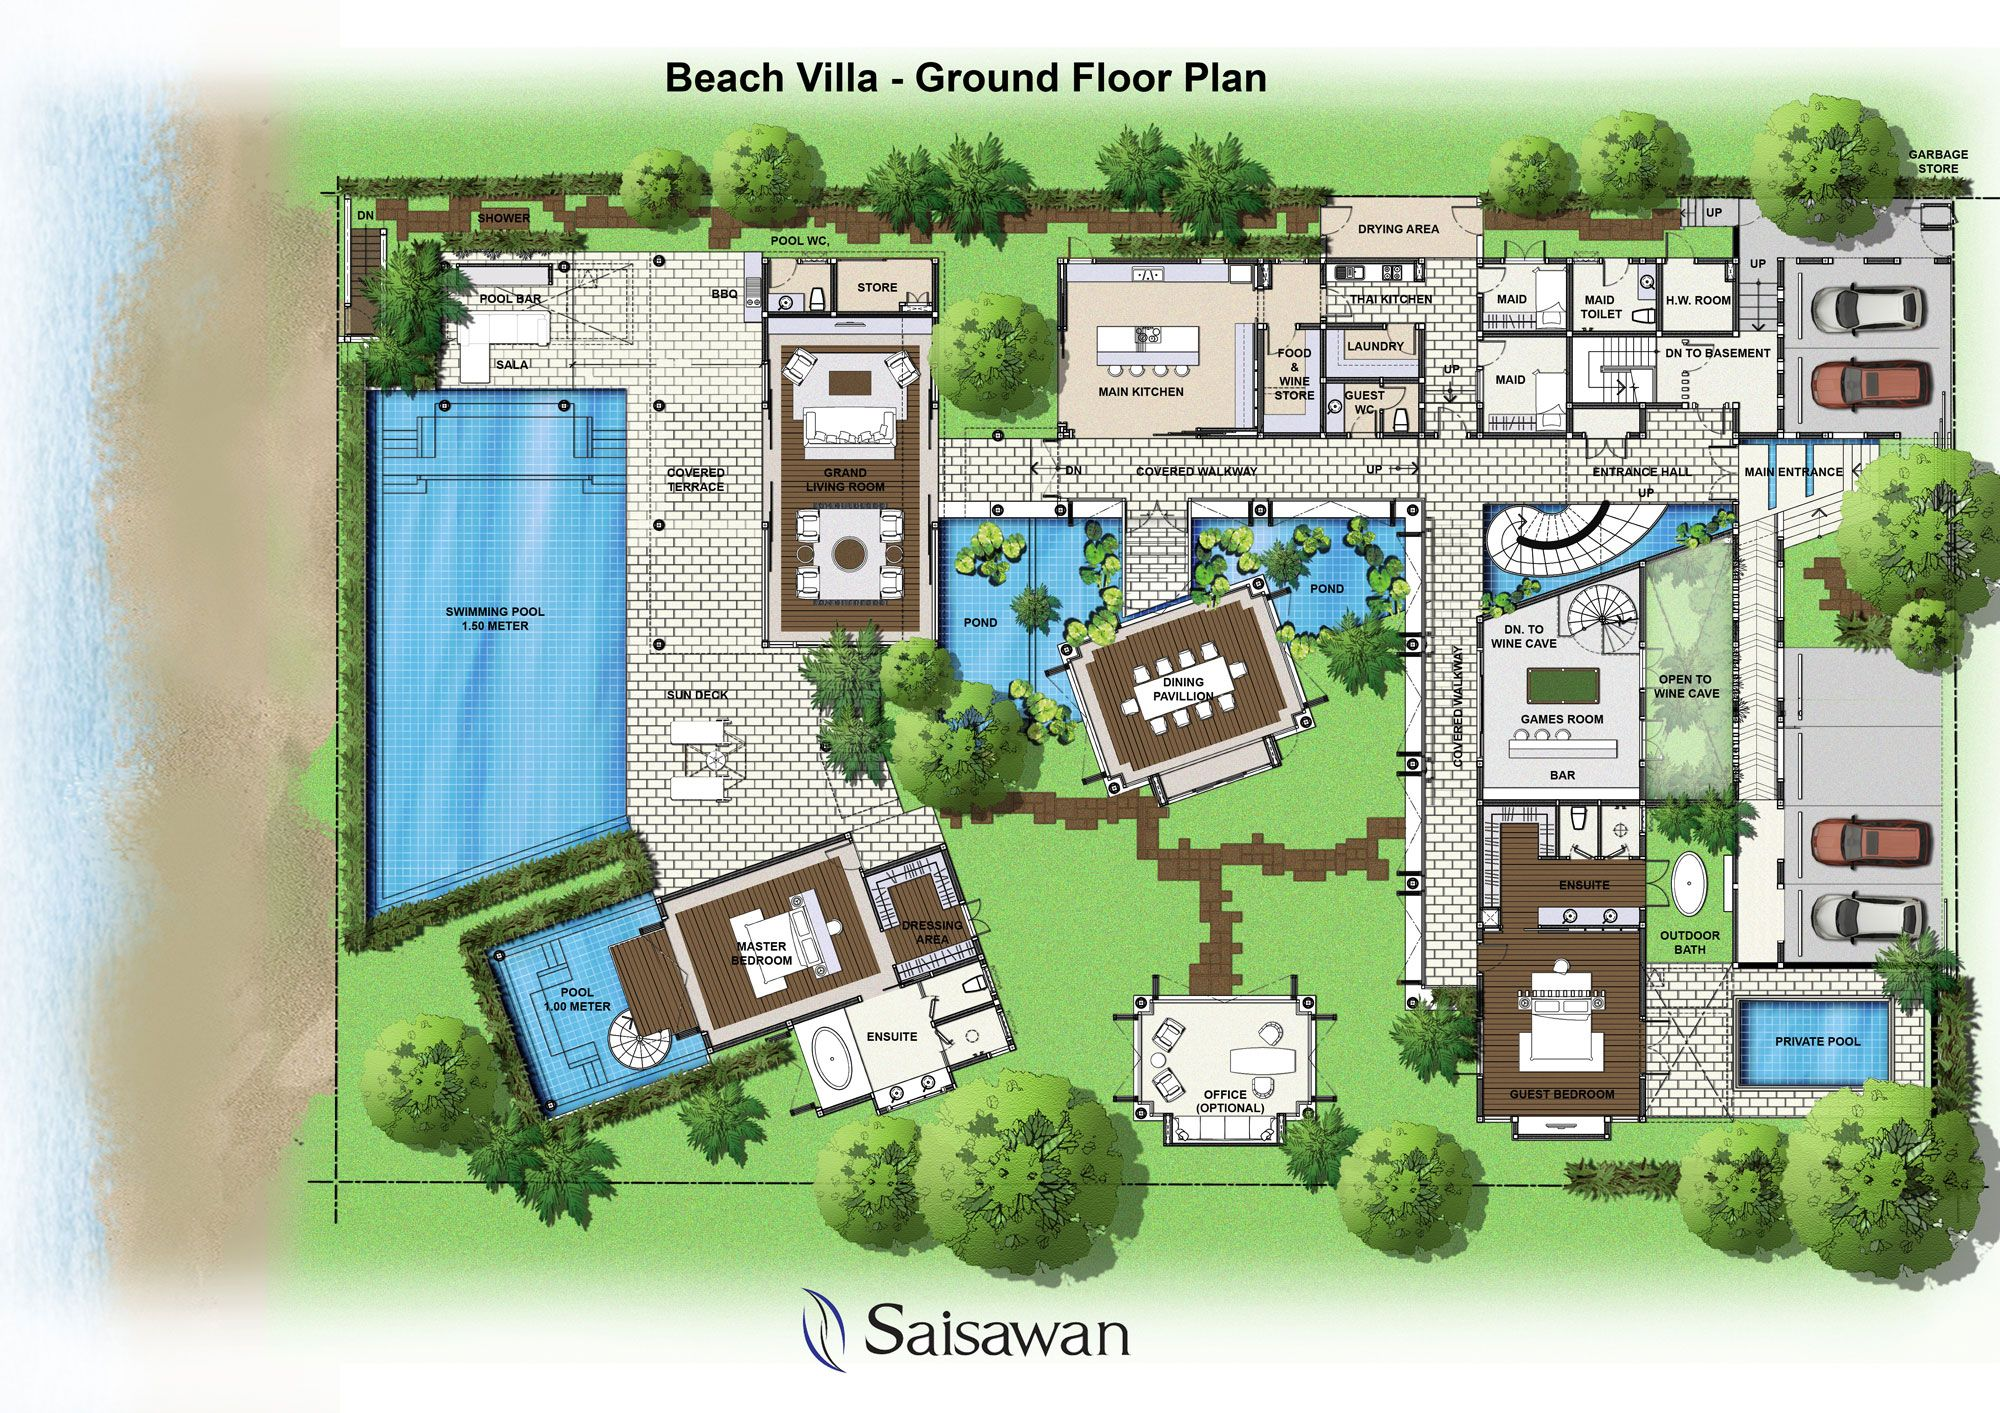 Luxury Home Plans Interior Desig Ideas Saisawan Beach Villas Ground Floor  Plan. Studio Apartment Interior